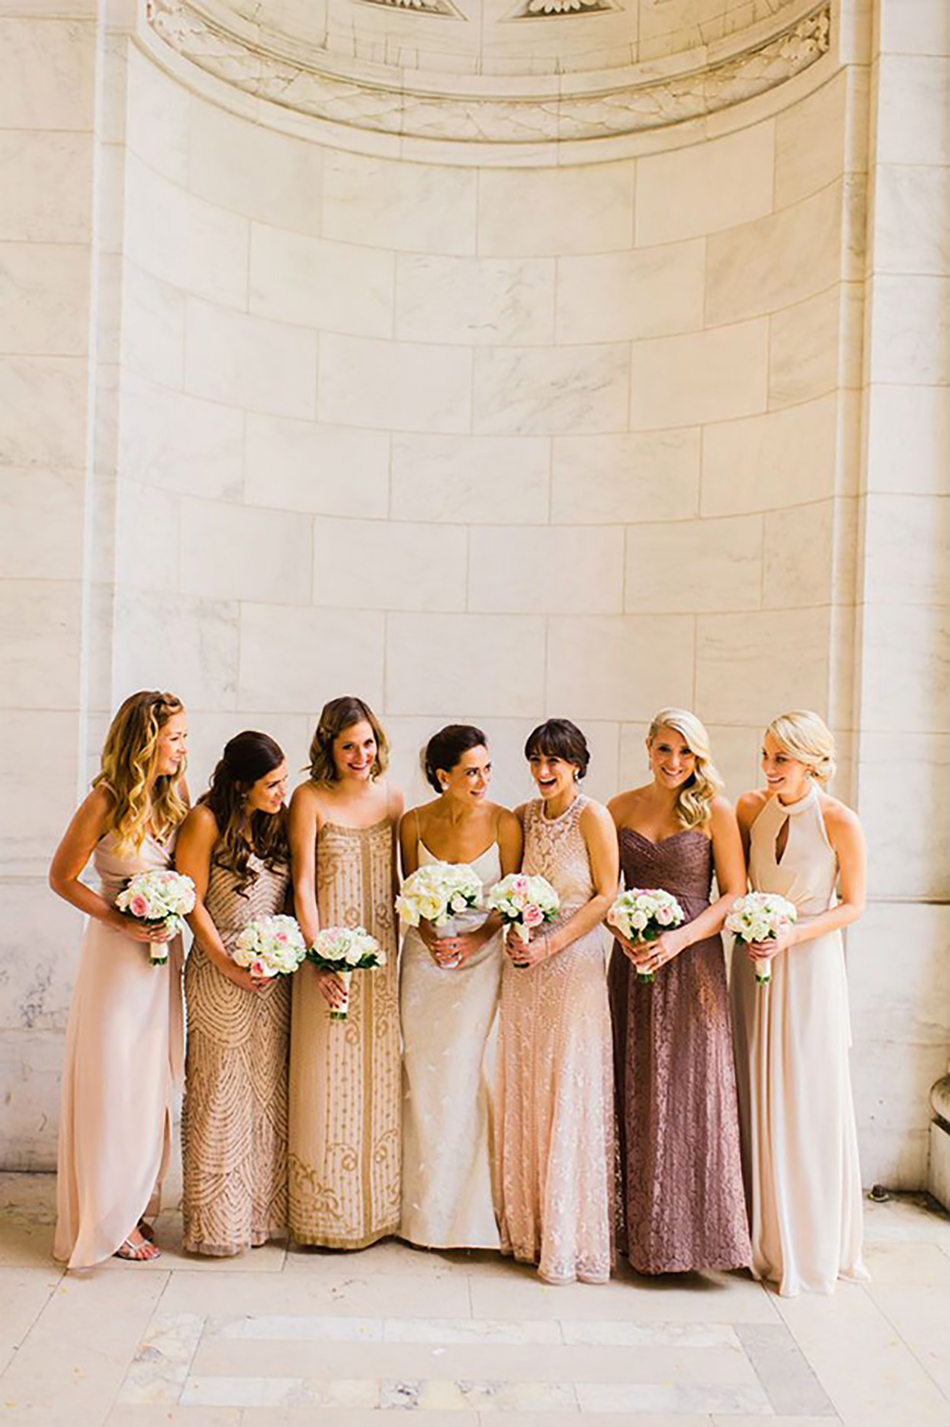 The US wedding traditions we're embracing